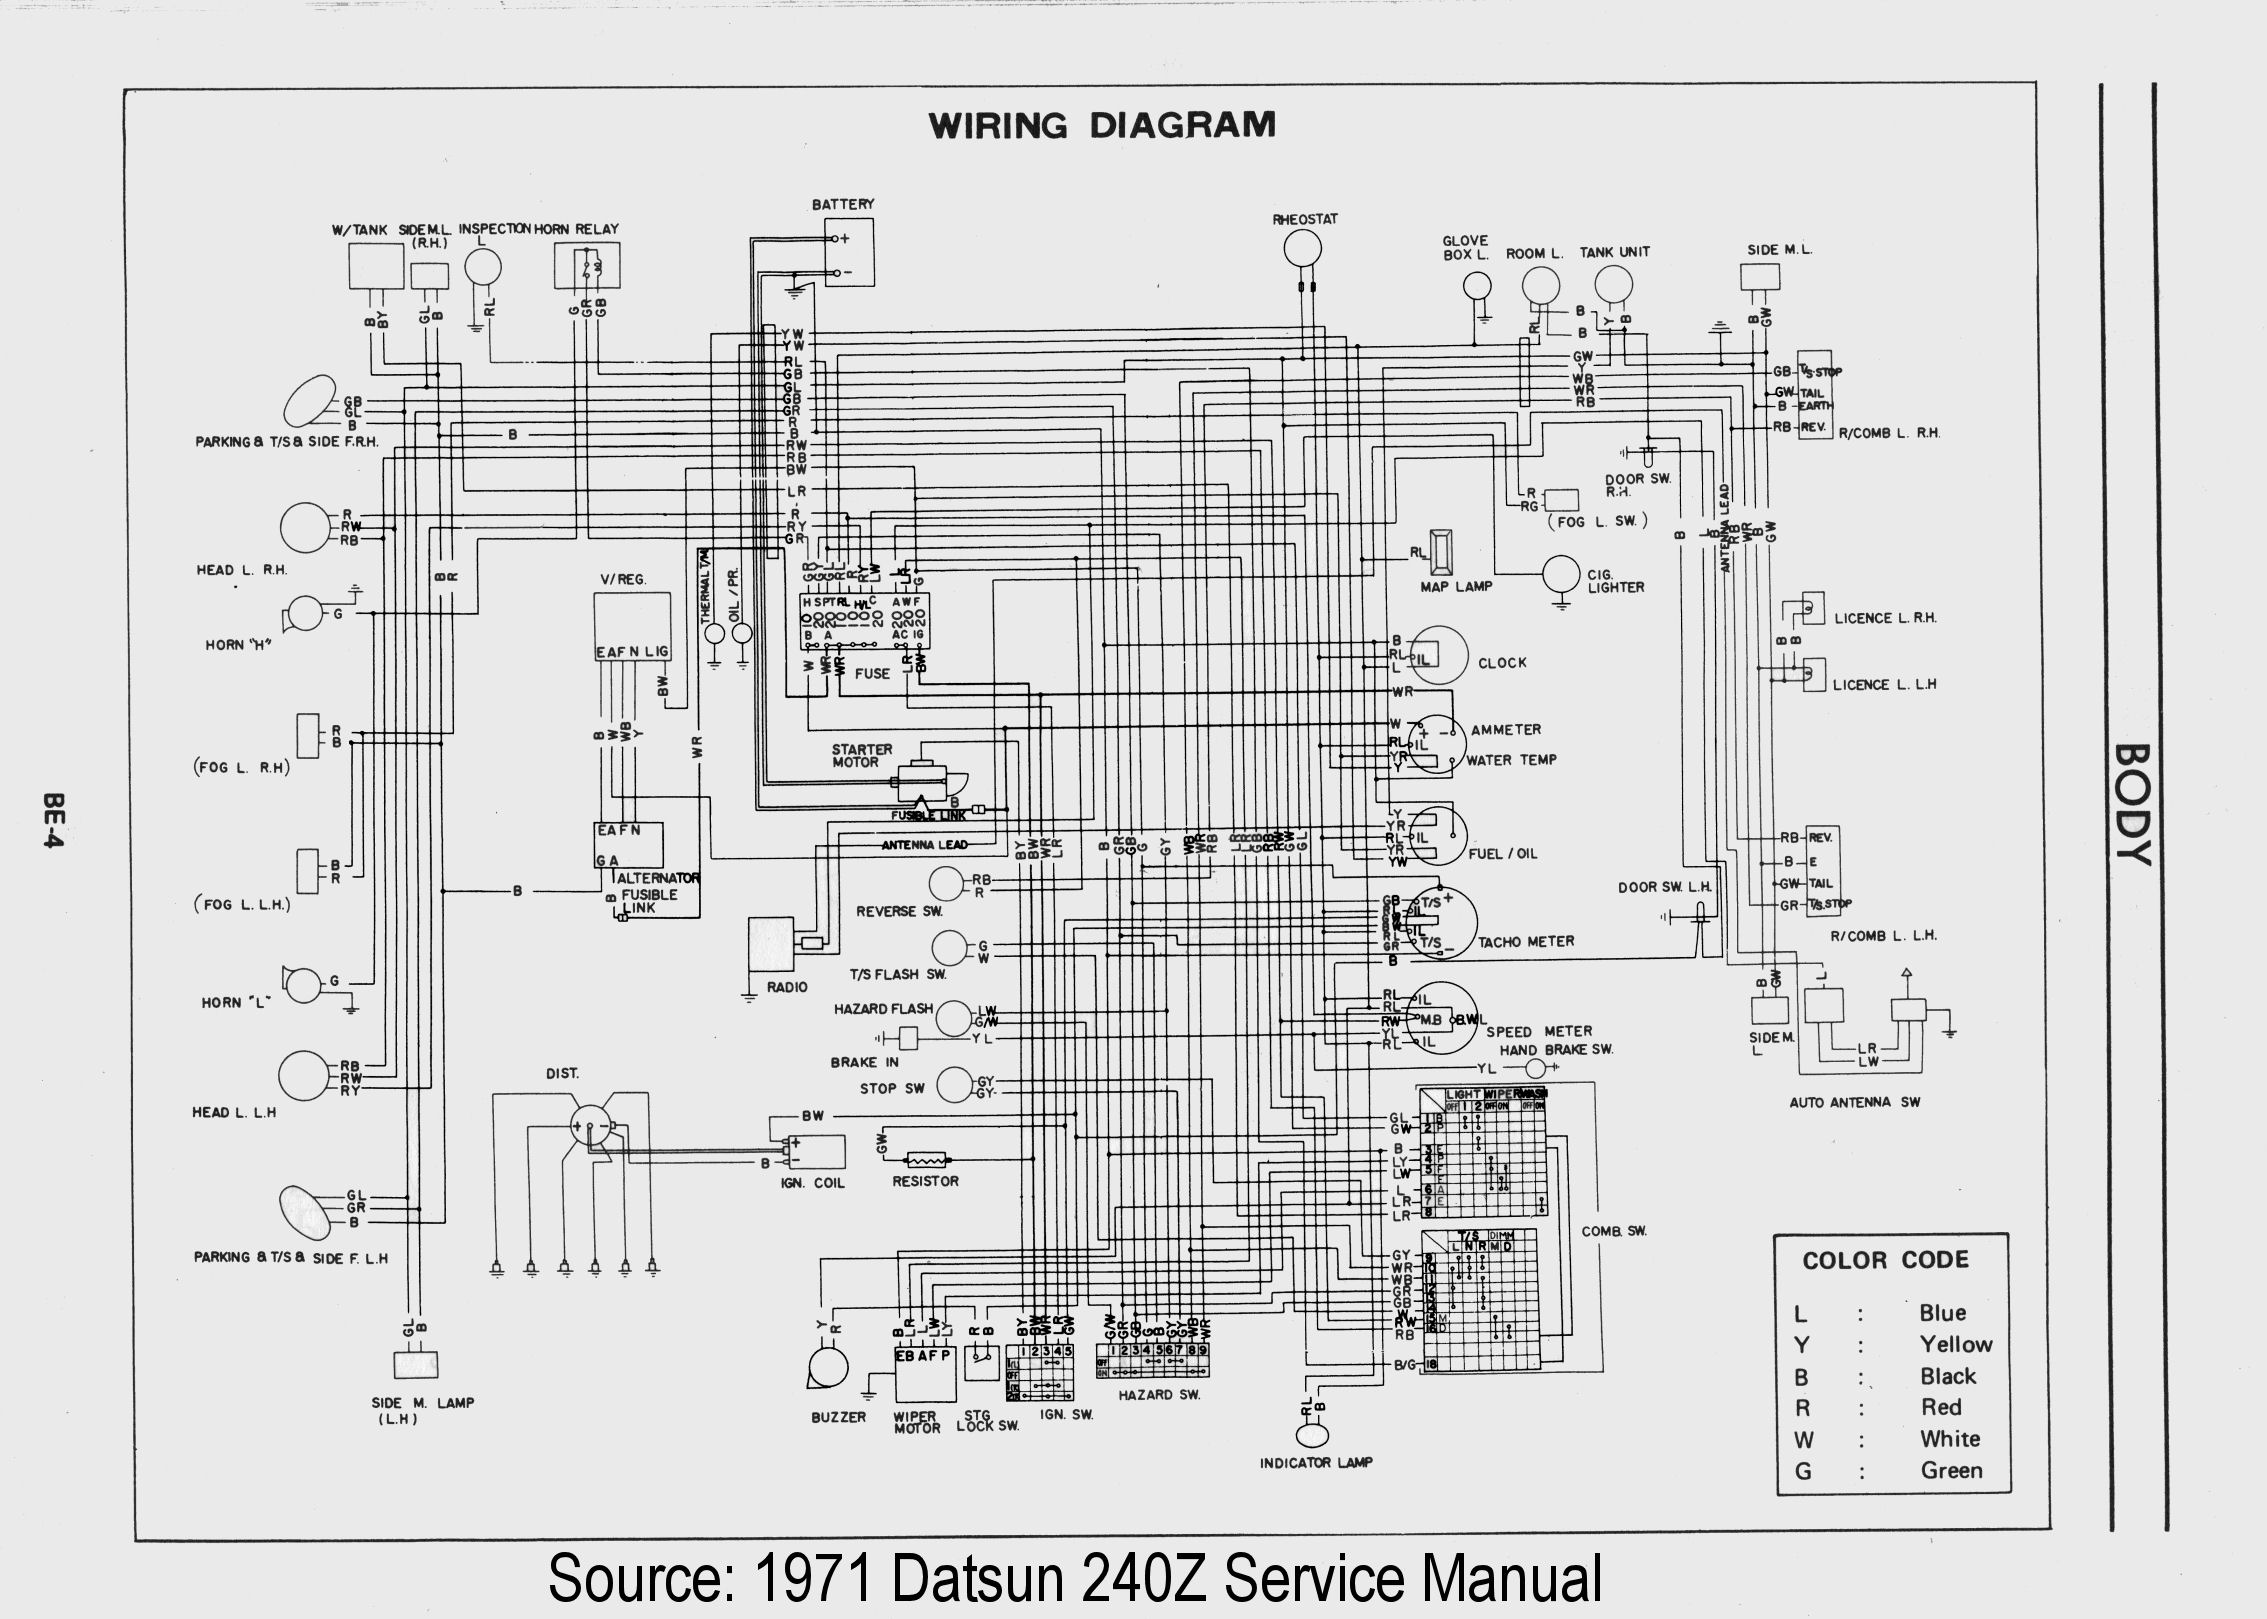 1973 240z wiring diagram